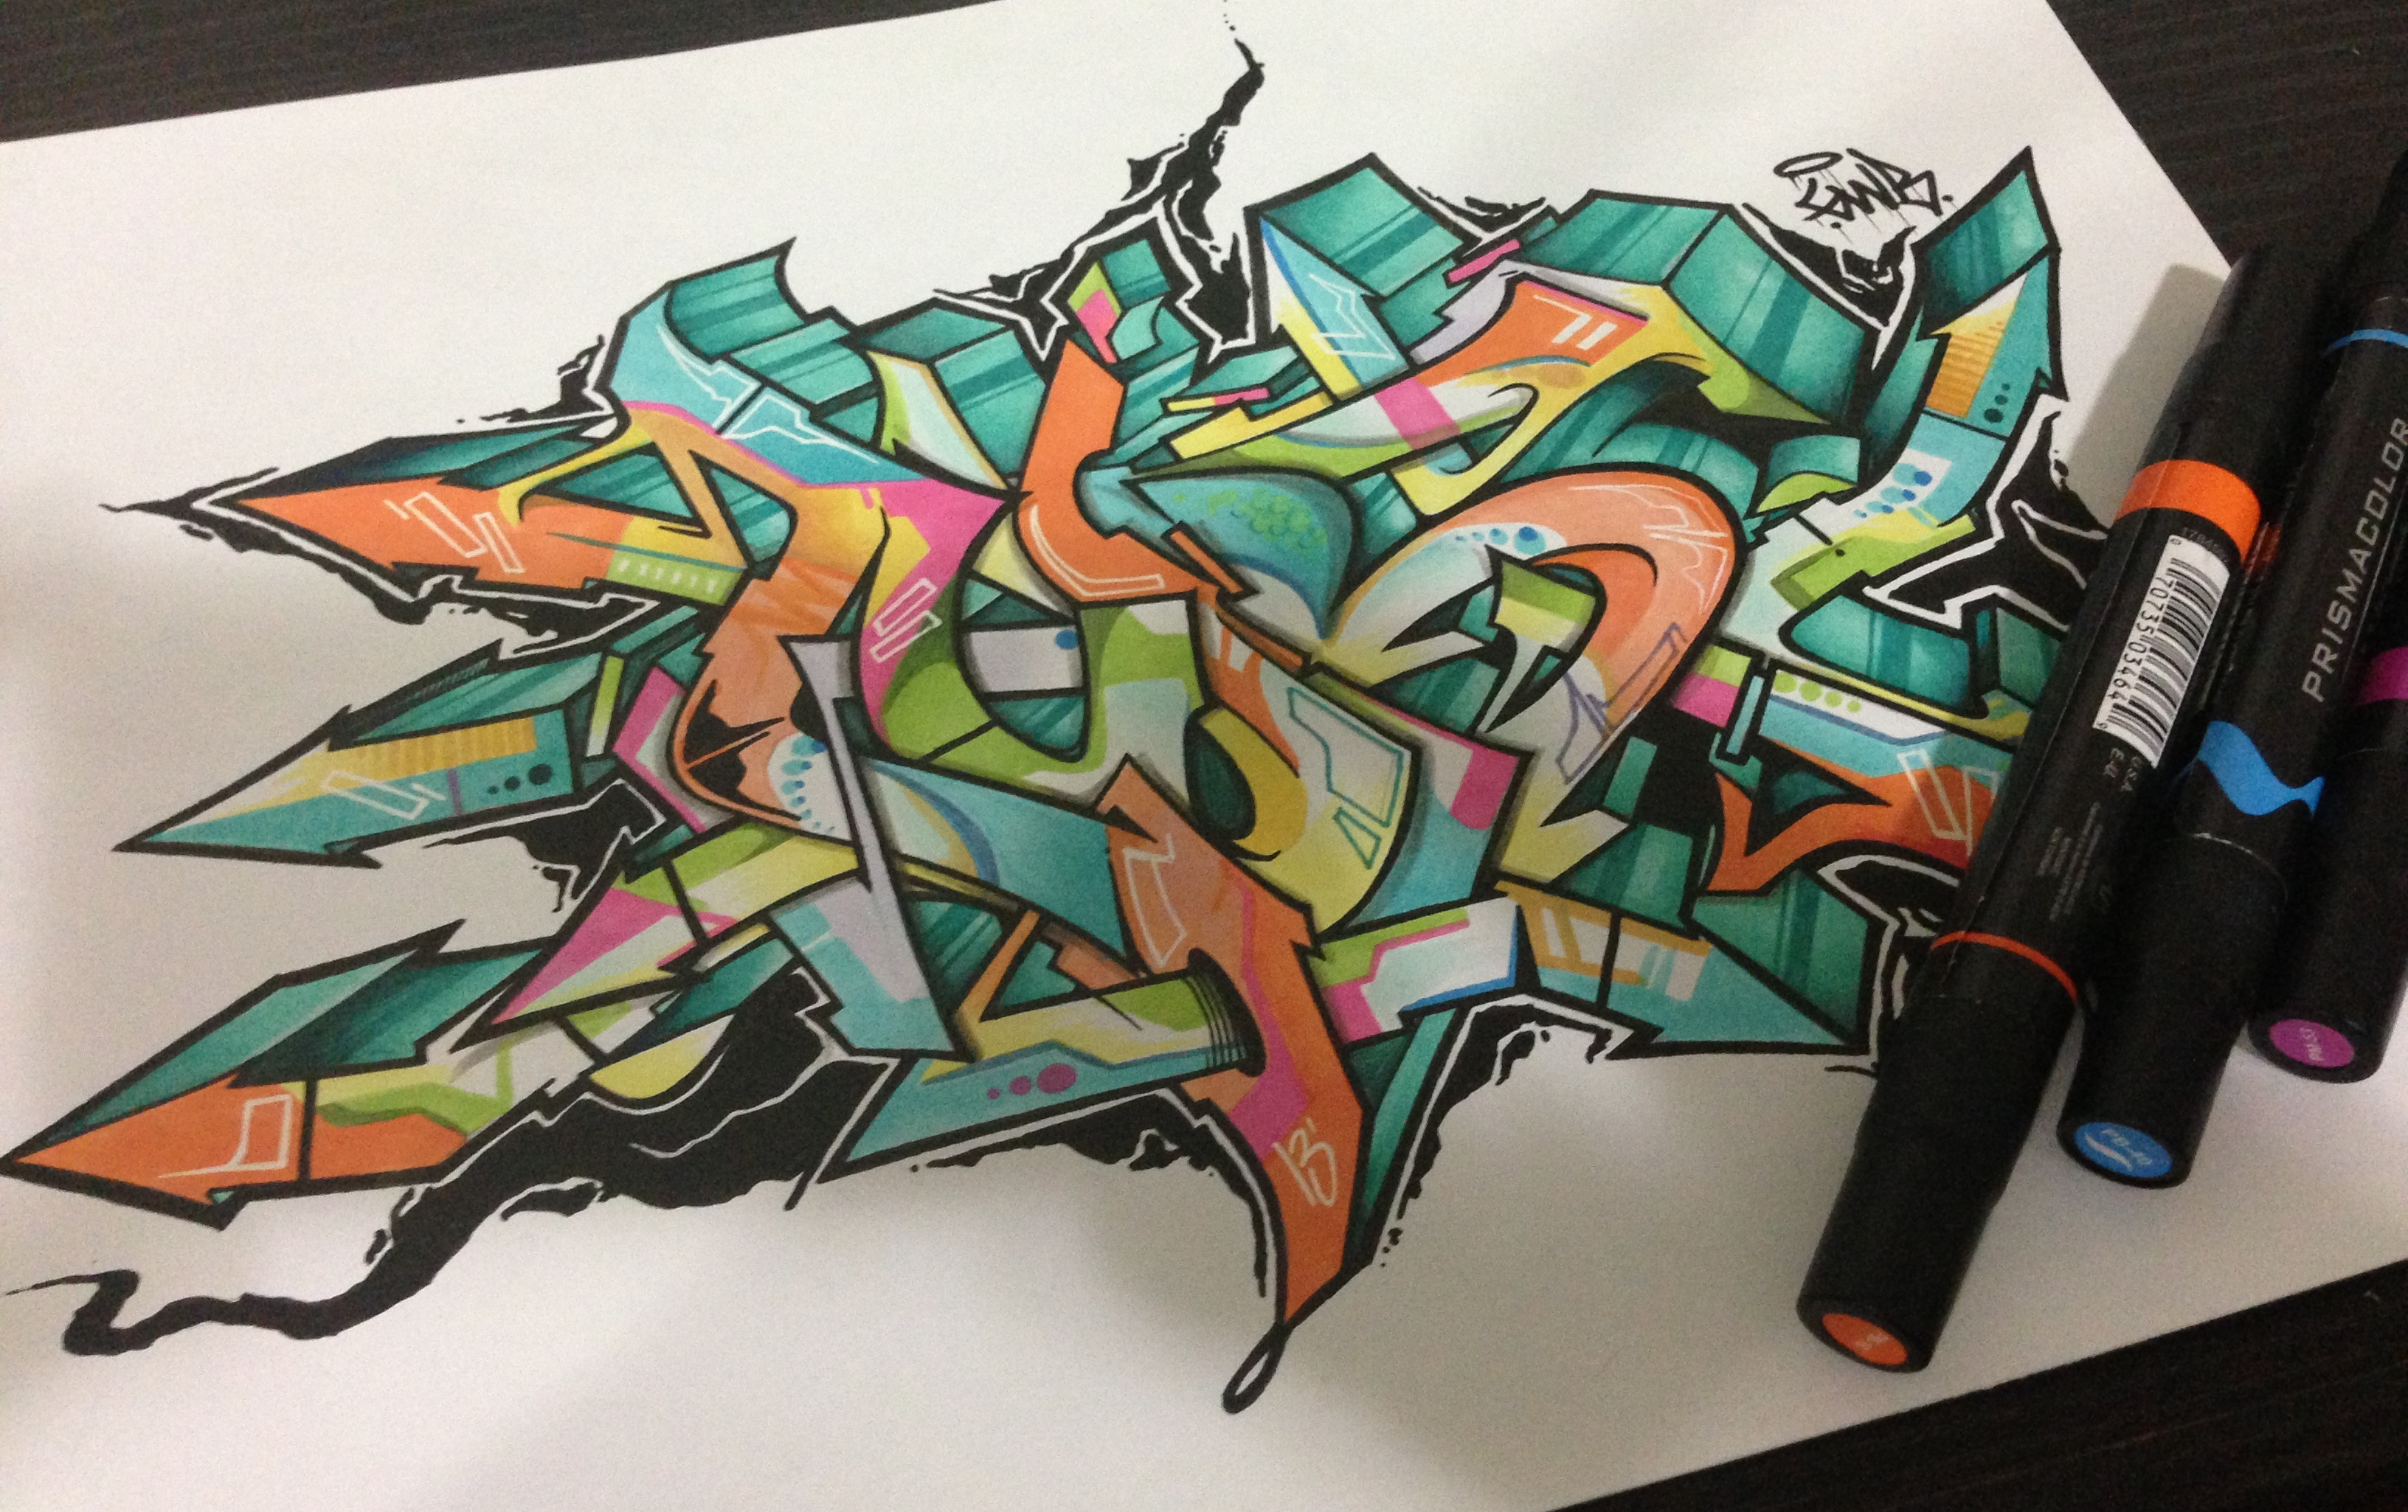 AOB by Nover, markers on paper, 2014.